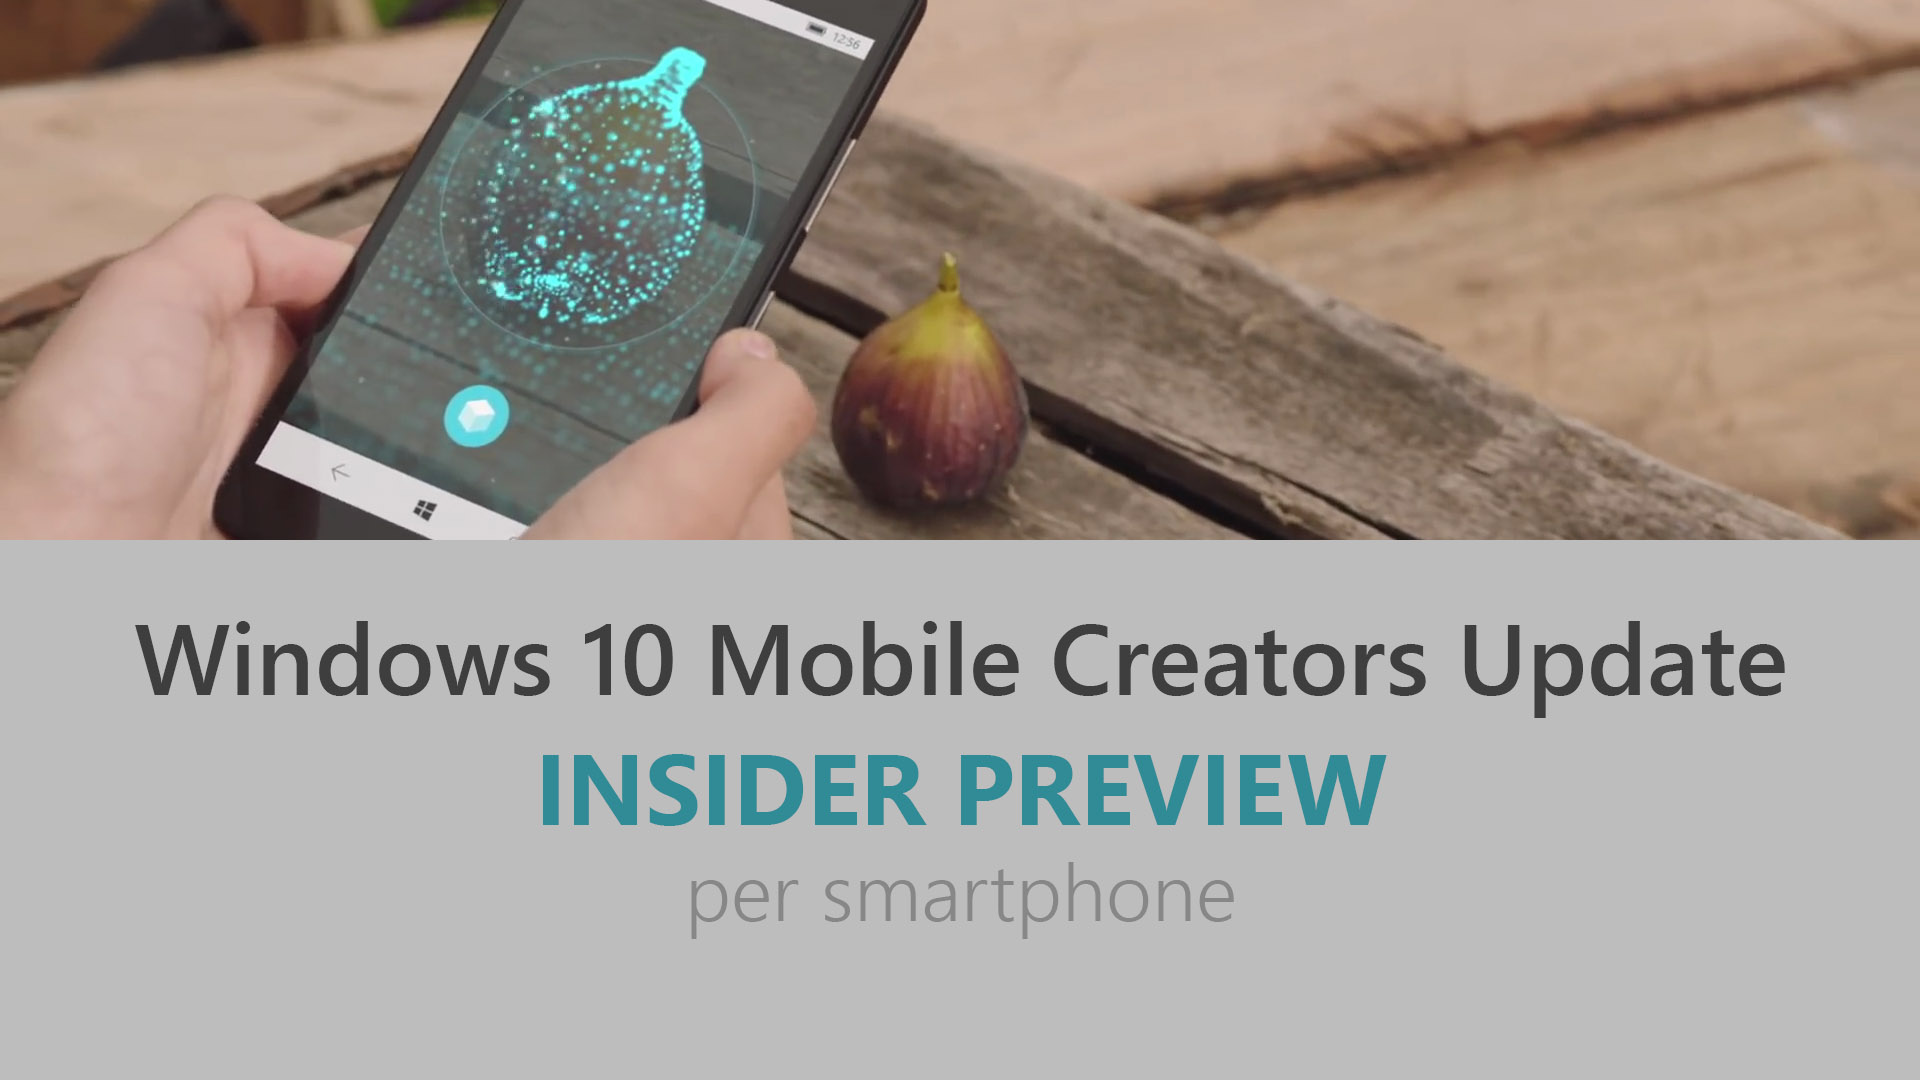 Windows 10 Mobile Creators Update - Build 15063